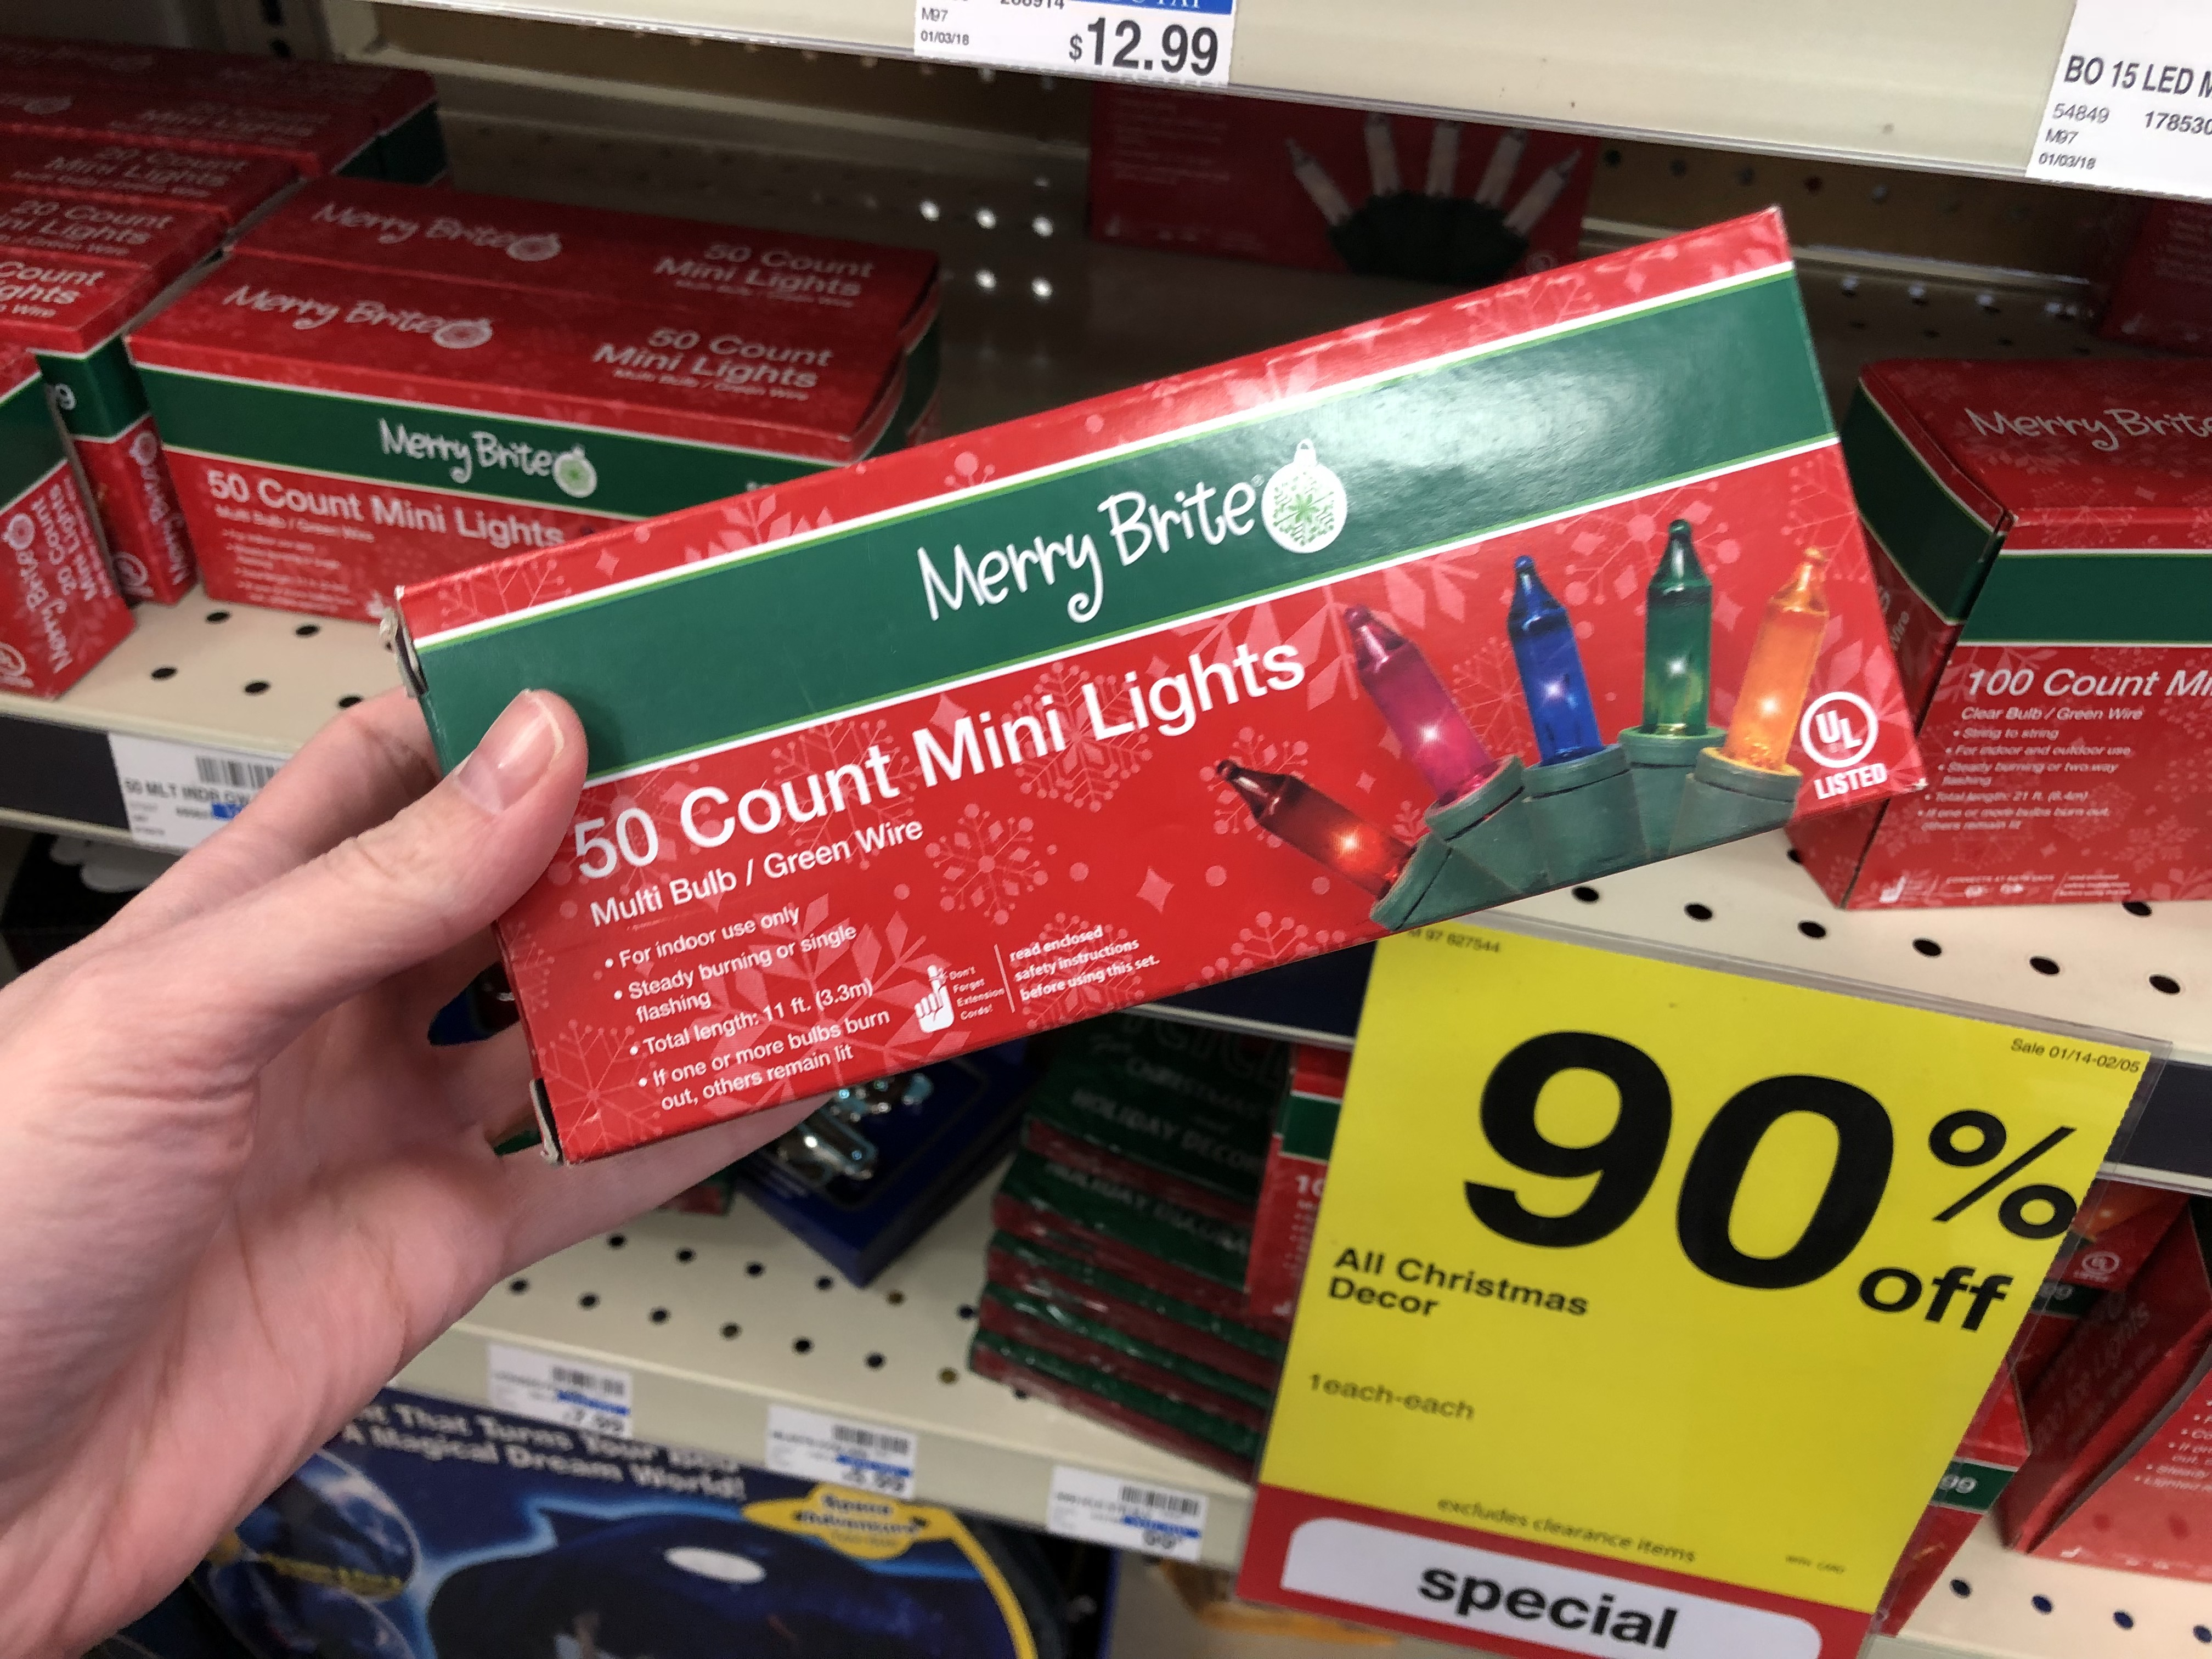 23 money saving tips you may not know about shopping at cvspharmacy – after holiday clearance